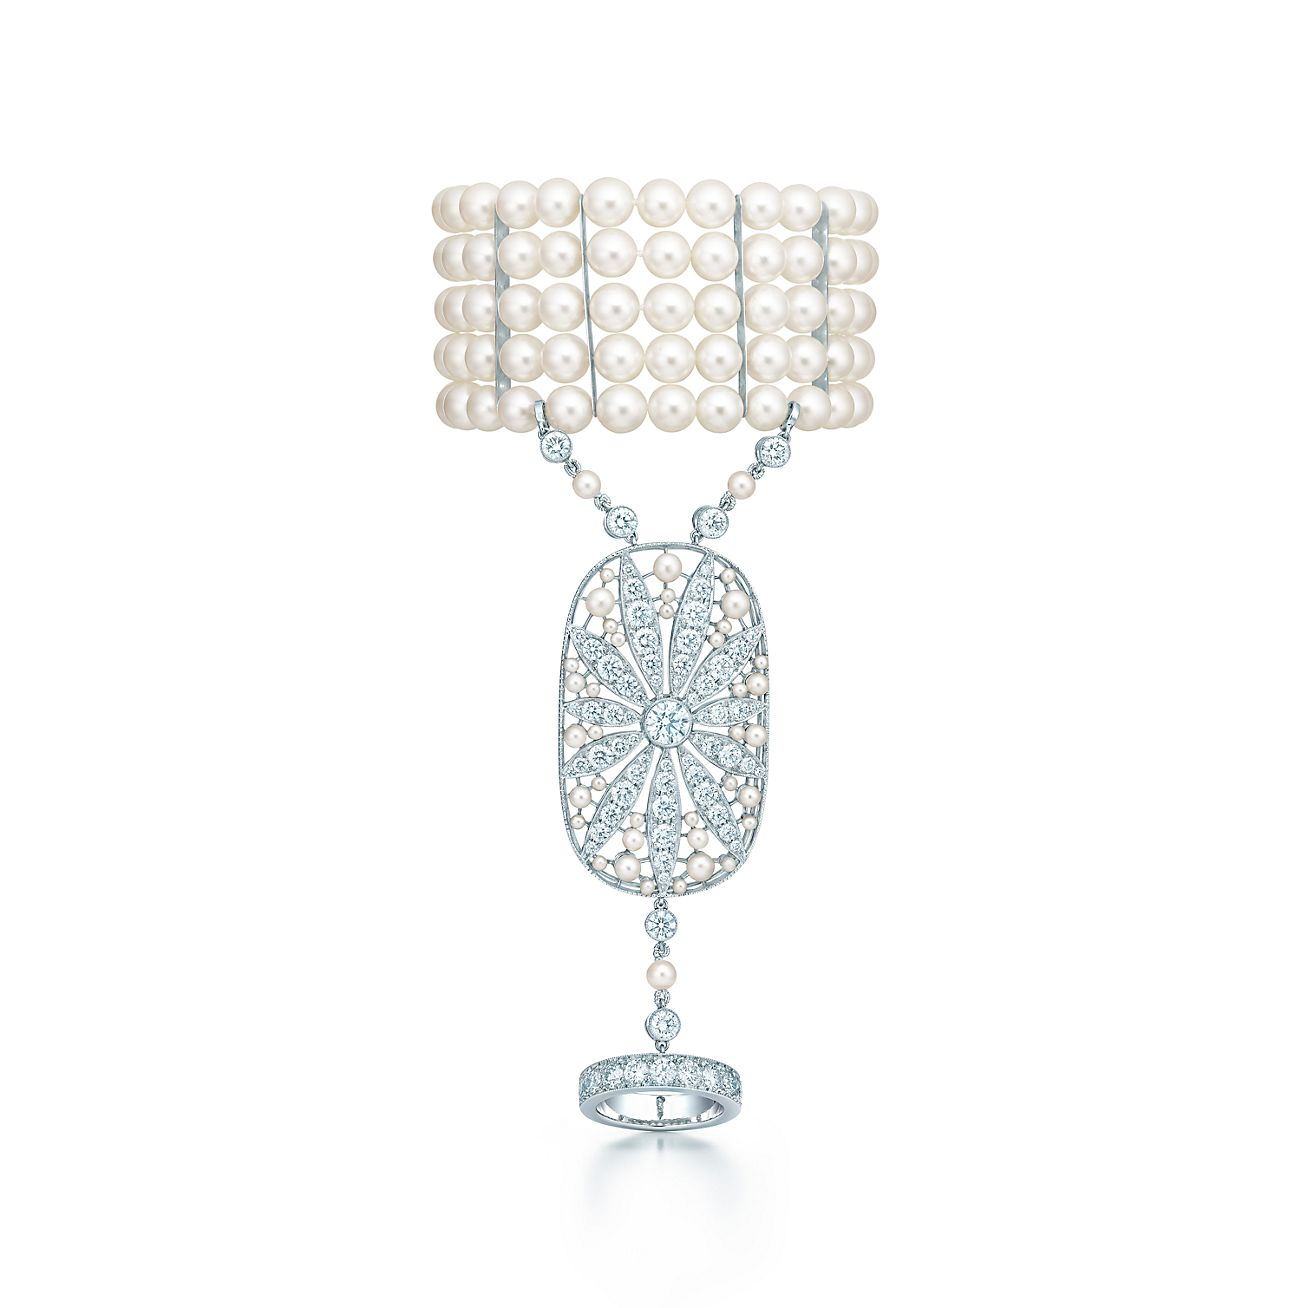 08a6eef4e ... the gatsby collectiondaisy hand ornament ...